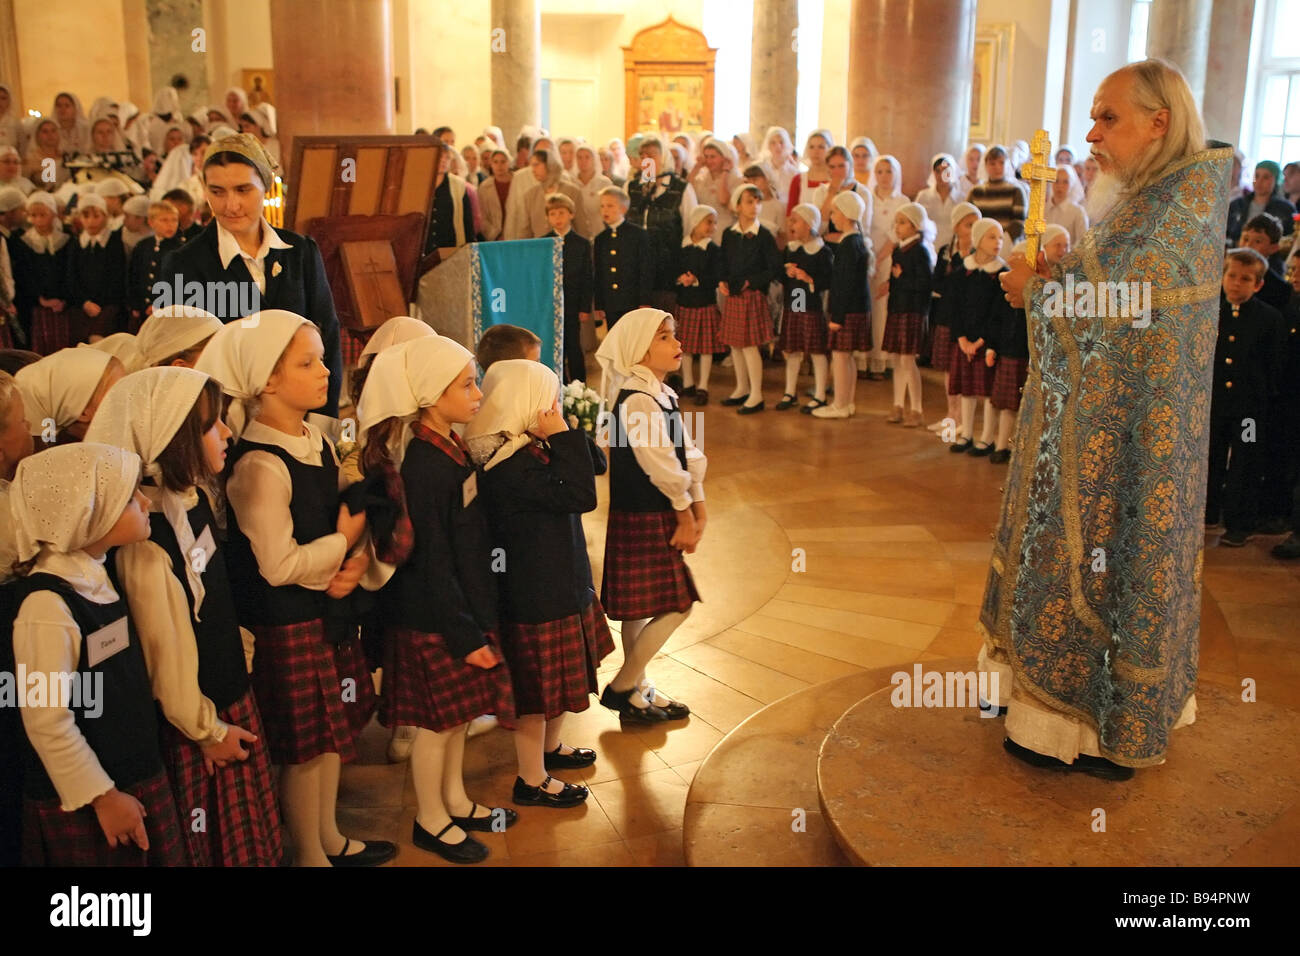 Father Arkady overseer of students of the Orthodox Dimitrievskaya secondary education school at Moscow s First City - Stock Image